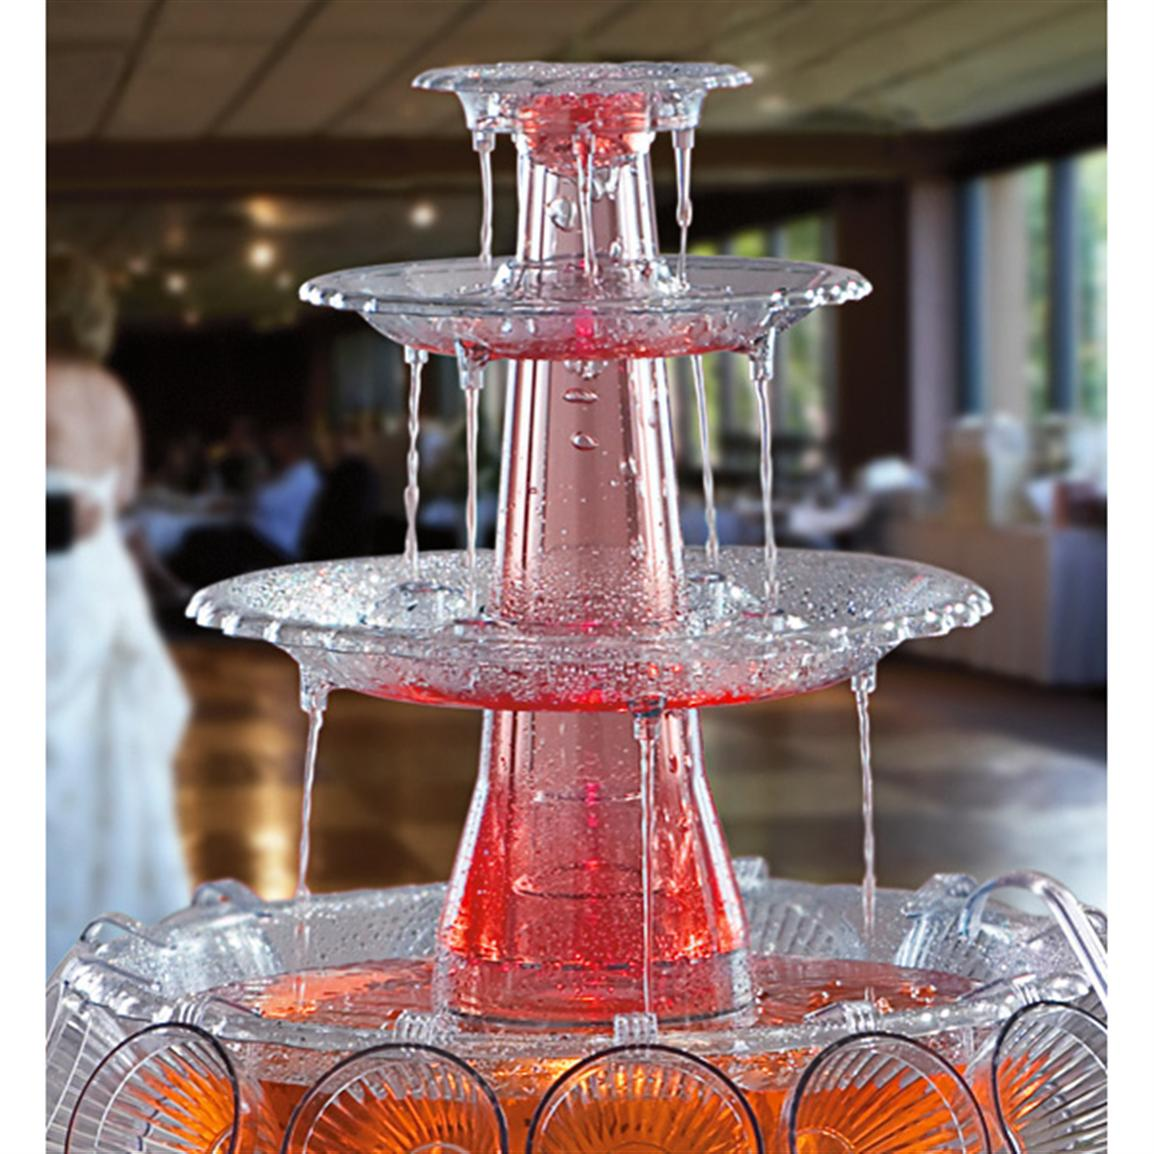 Beverage Fountain Ideas